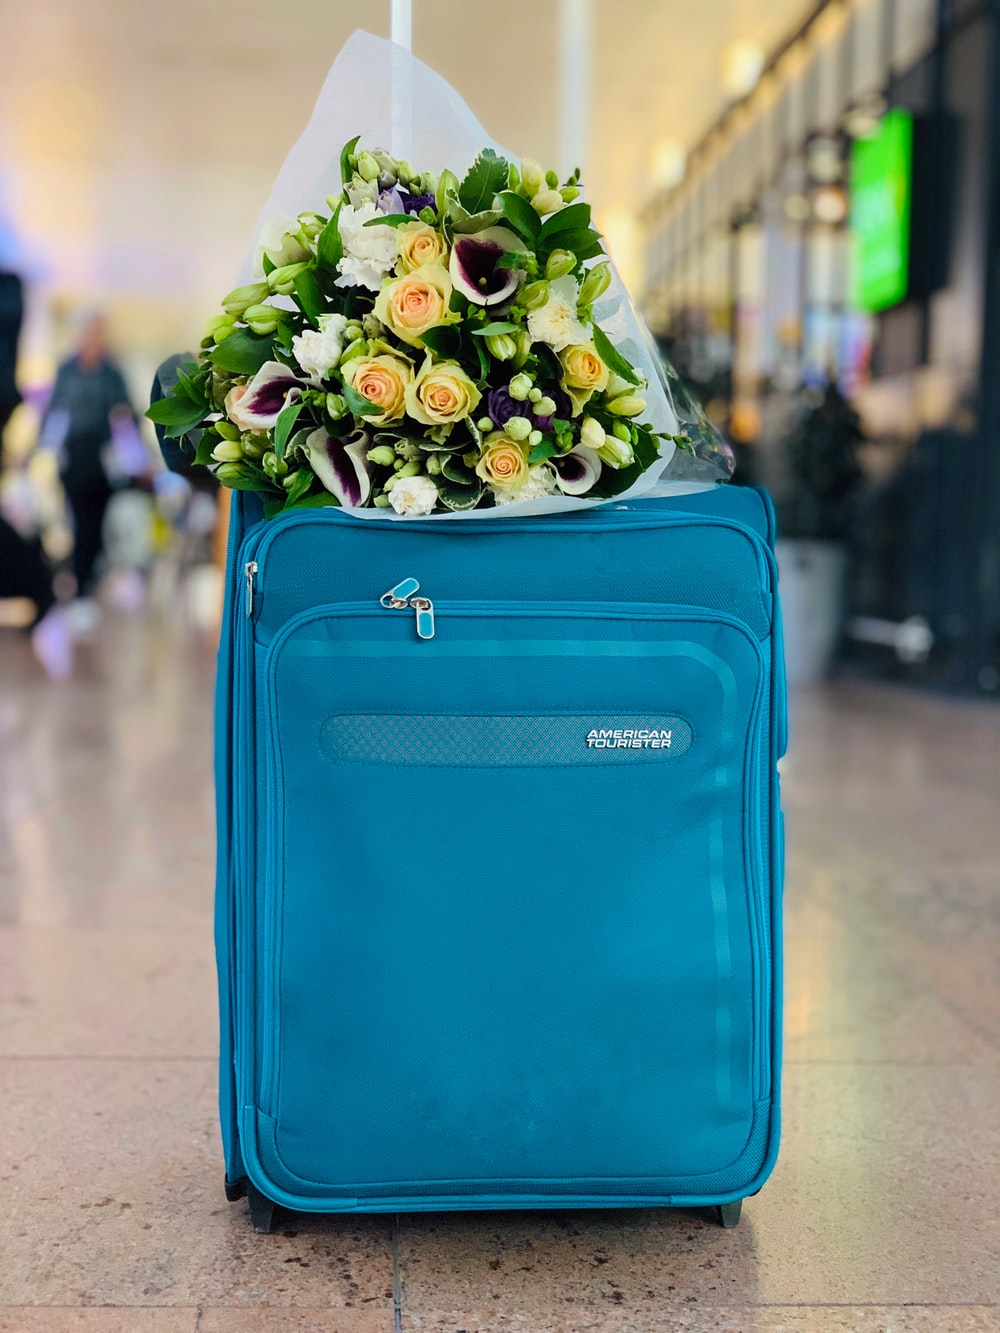 bouquet of flowers on blue luggage